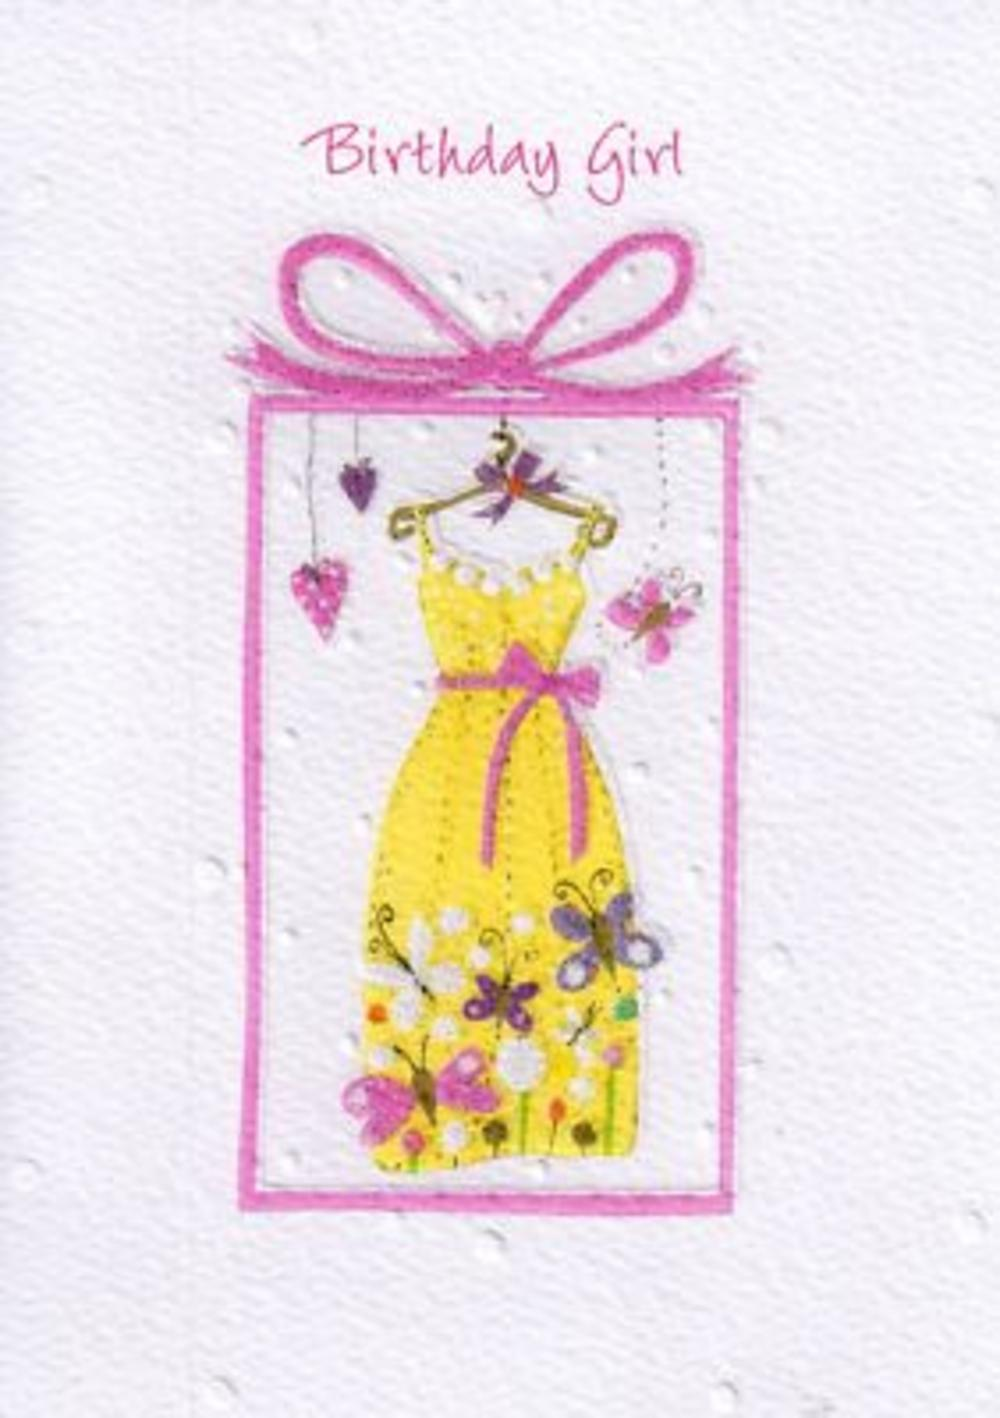 Glittered Female Birthday Girl Card